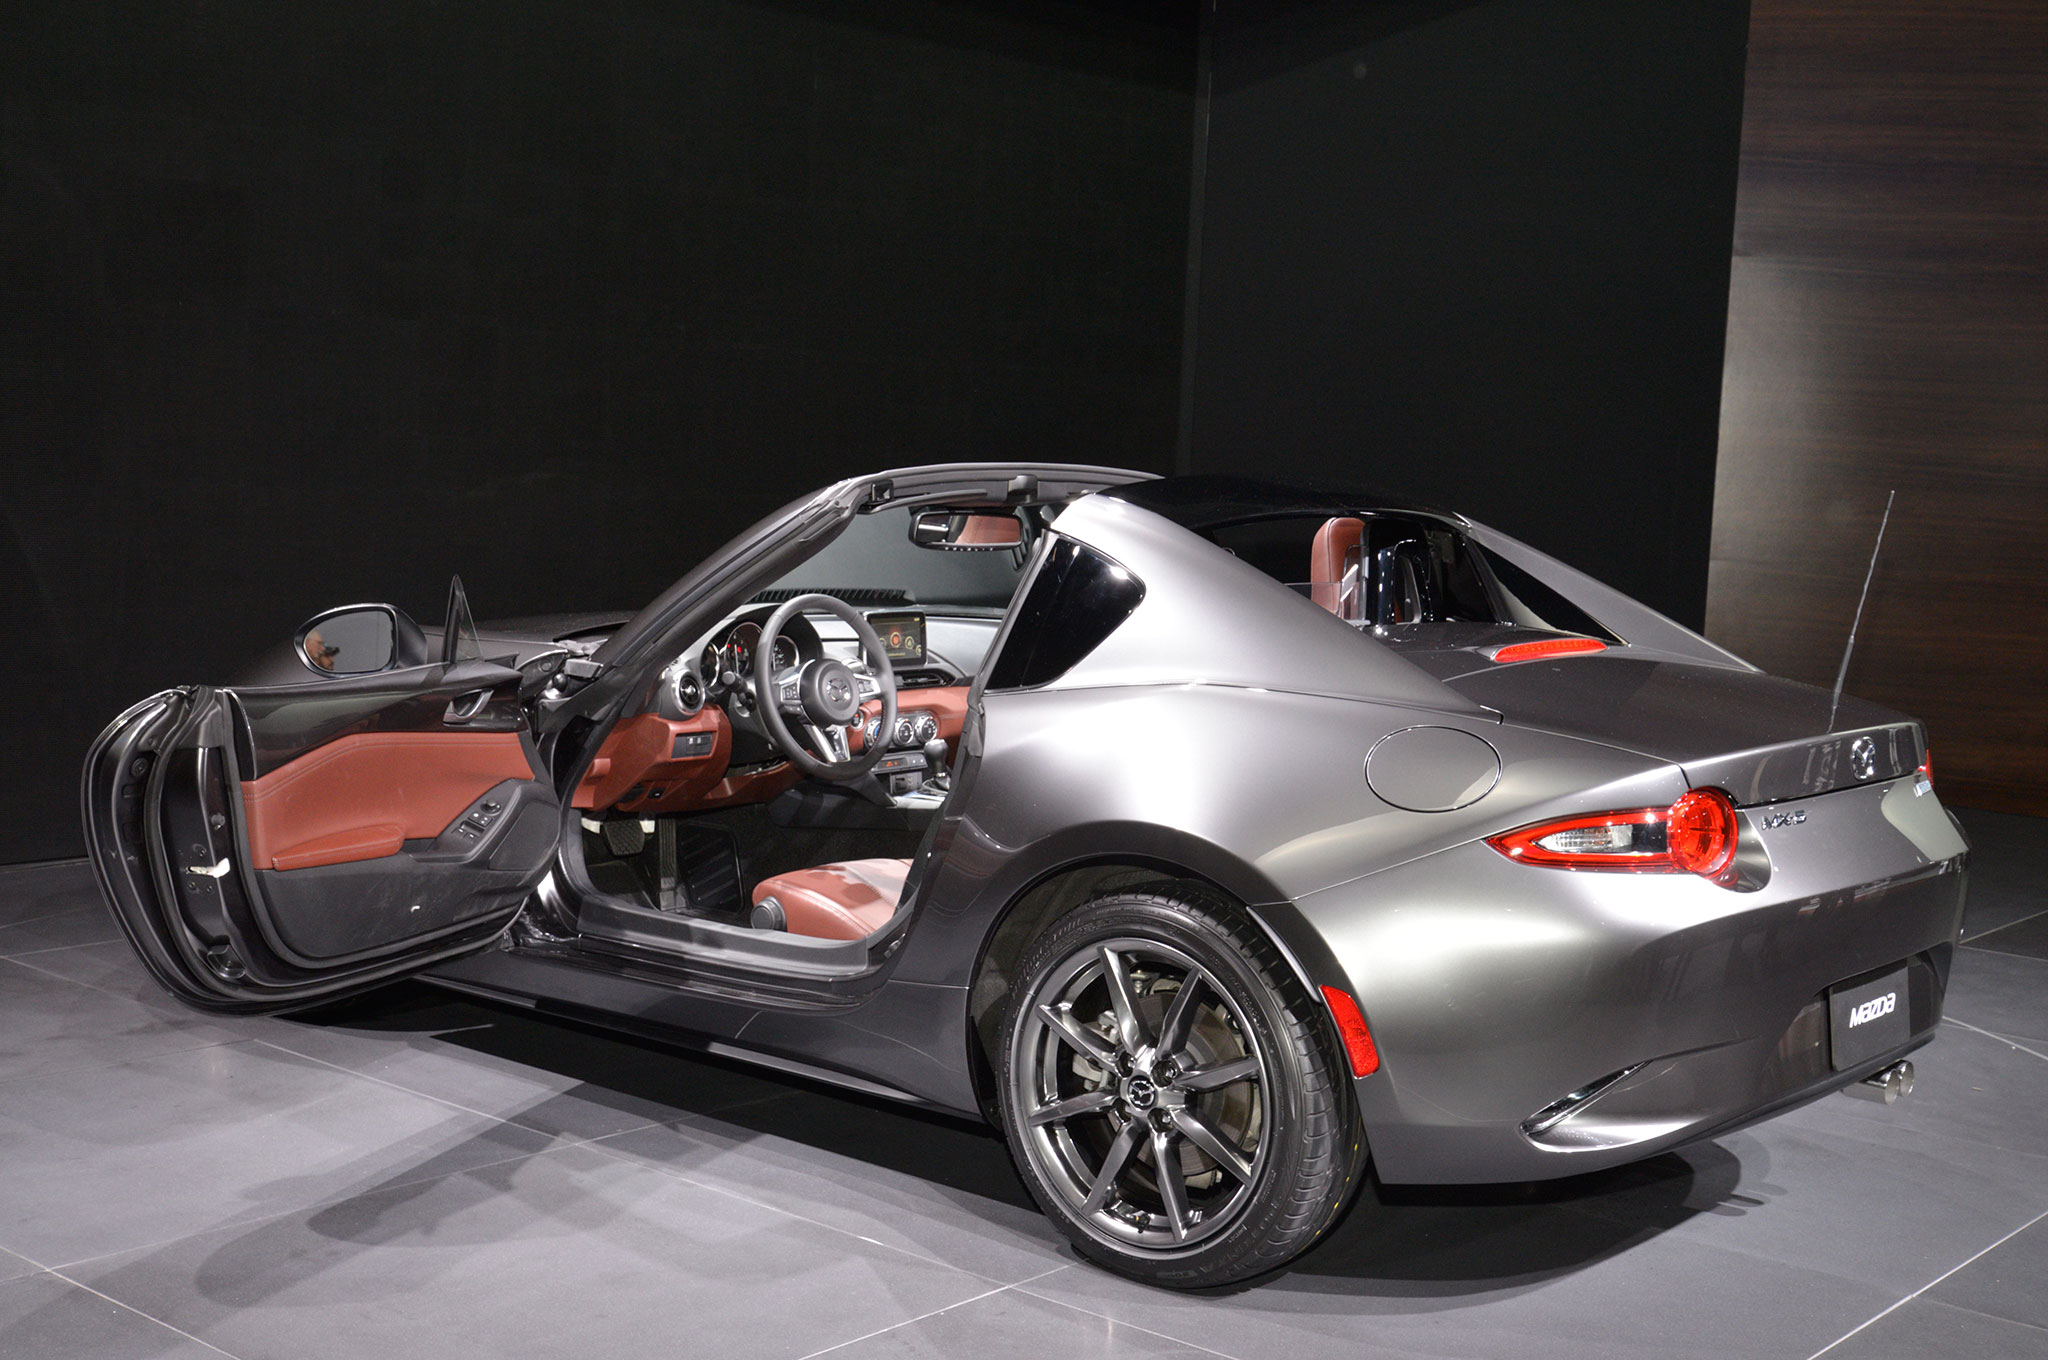 2017 mazda mx-5 miata rf launch edition starts at $34,685